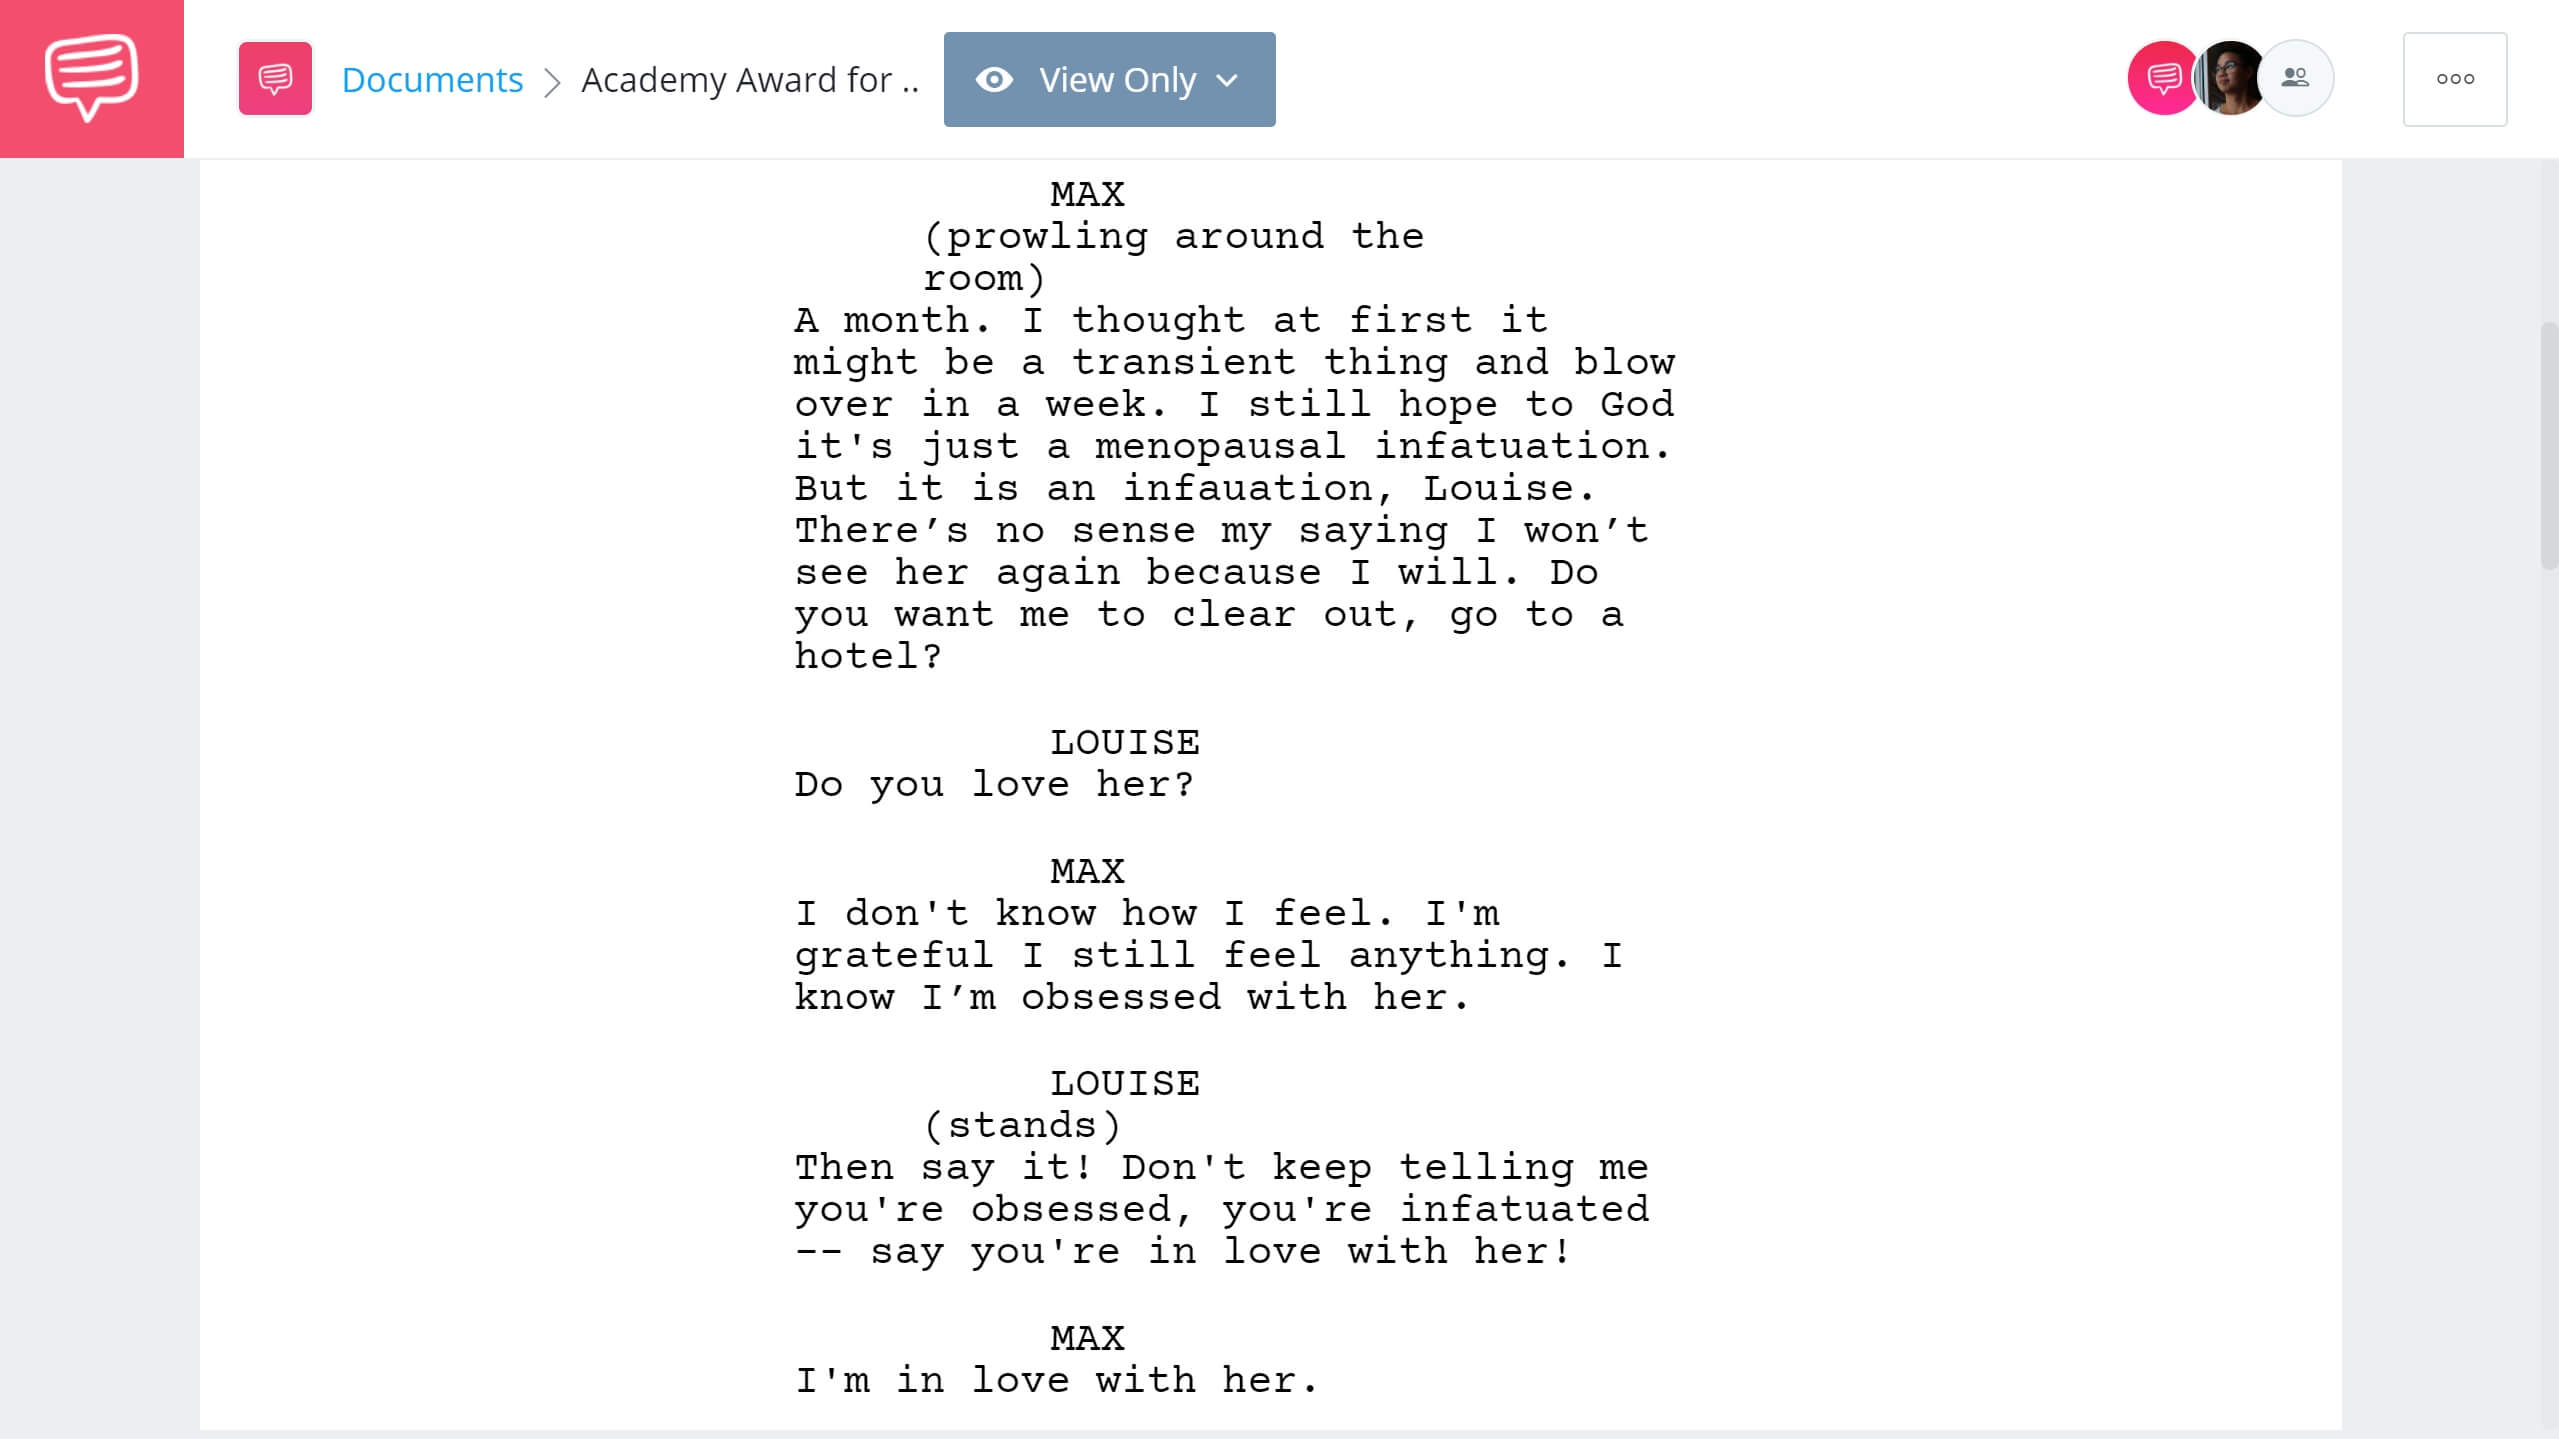 Academy Award for Best Supporting Actress Network Example StudioBinder Screenwriting Software